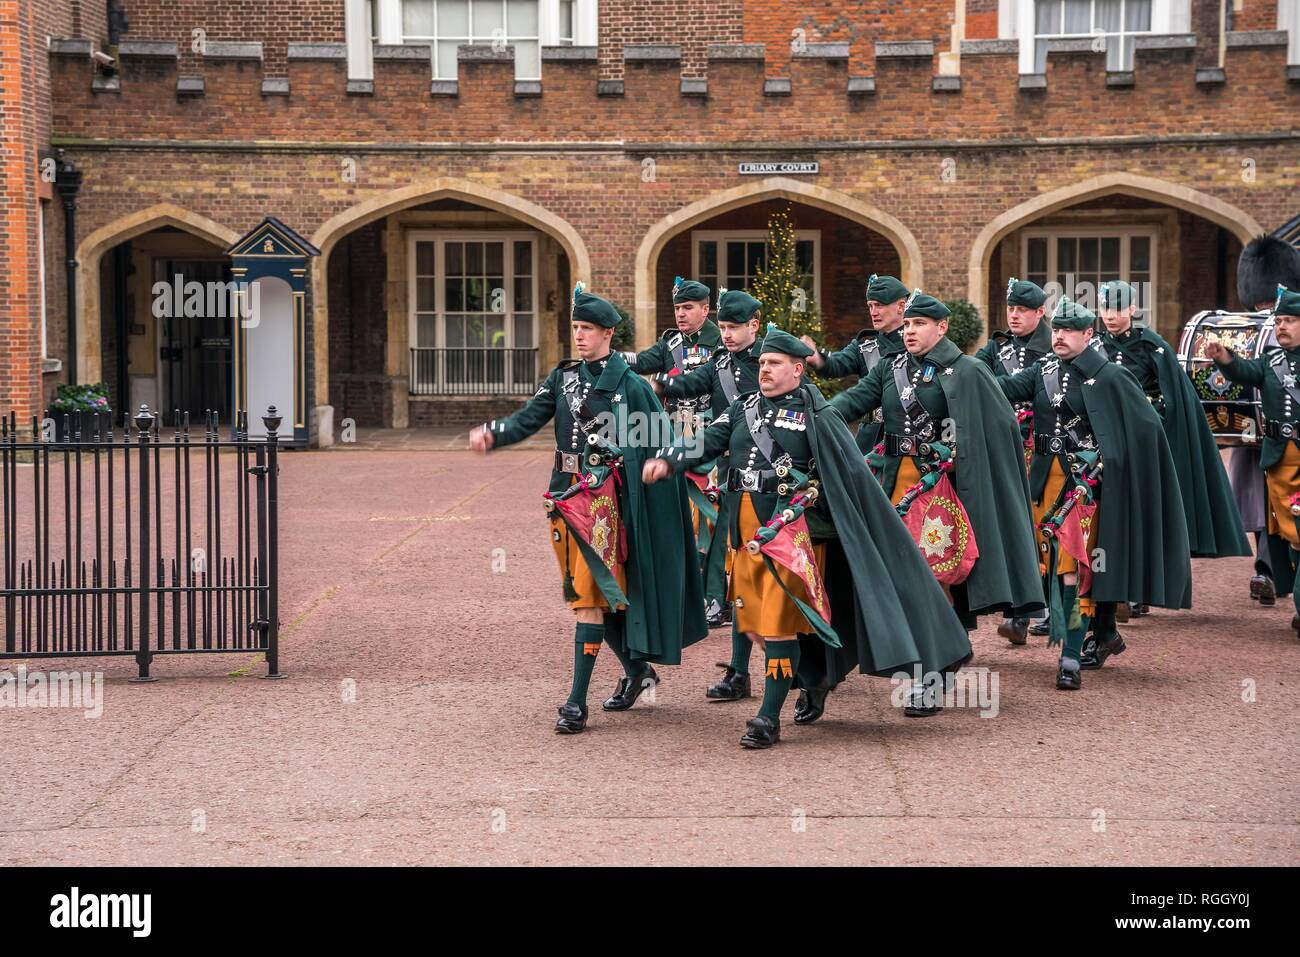 Scots Guards at the changing of the guard Changing the Guard, Friary Court, St James's Palace, London, Great Britain - Stock Image